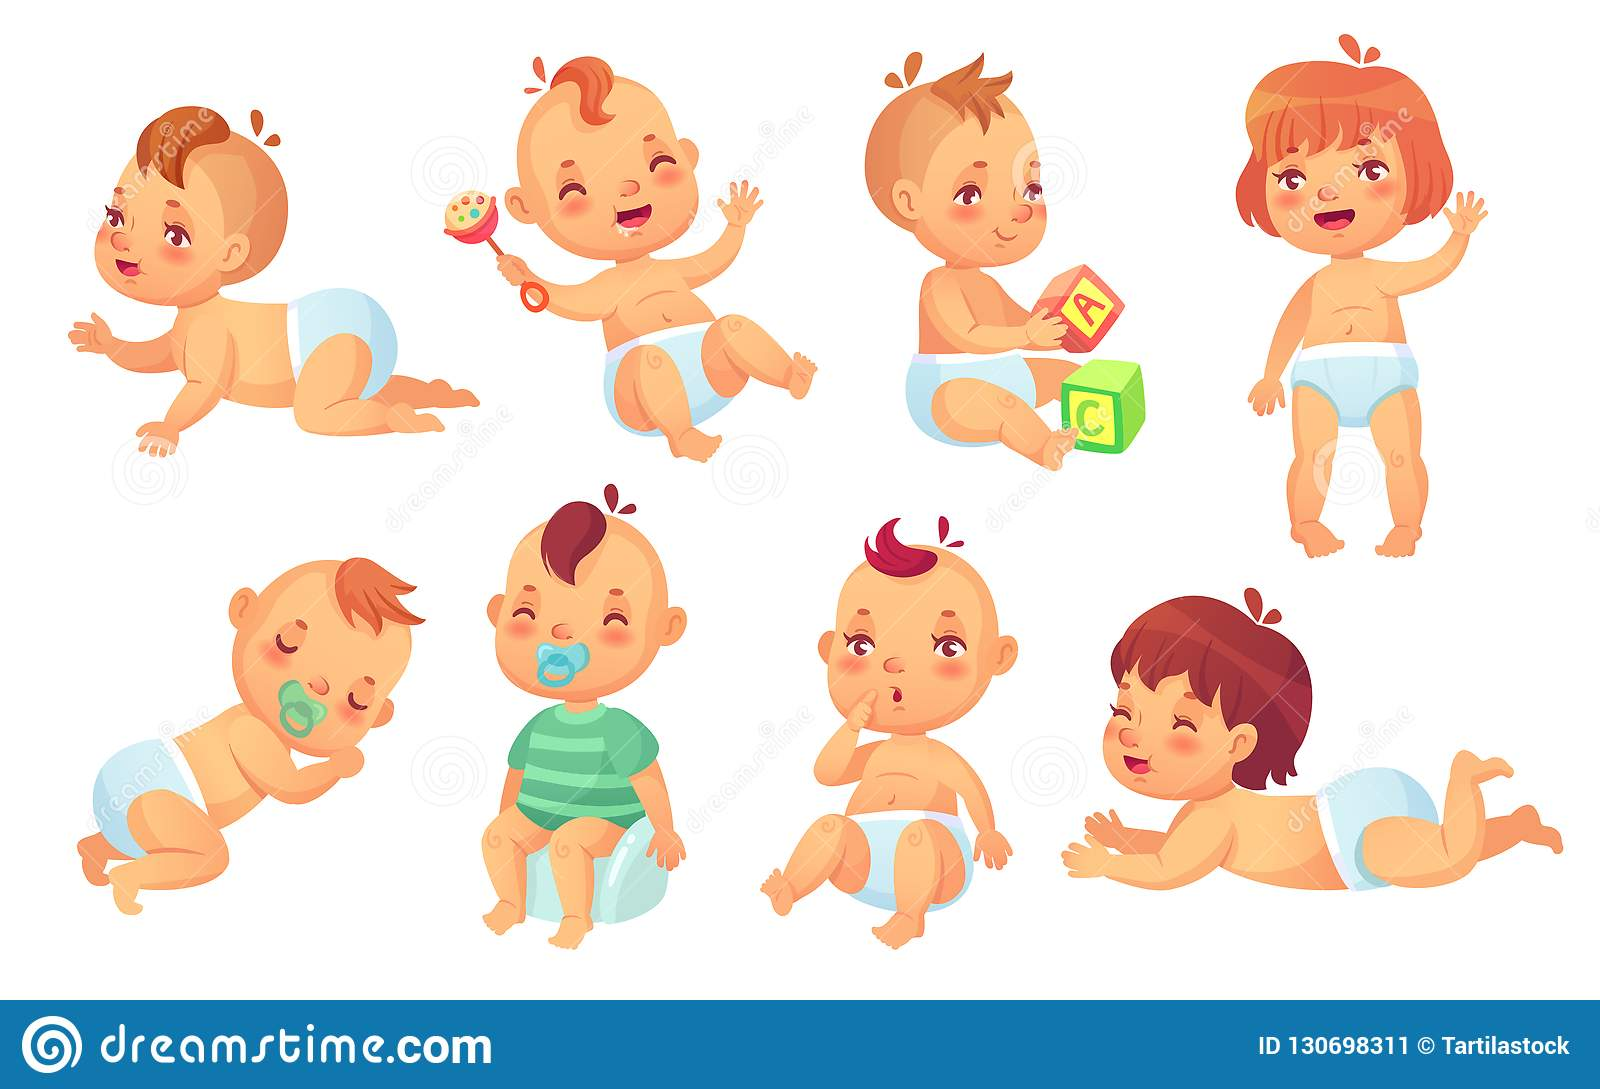 40abf4e54 Cute baby. Happy cartoon babies, smiling and laughing toddler isolated  vector character set